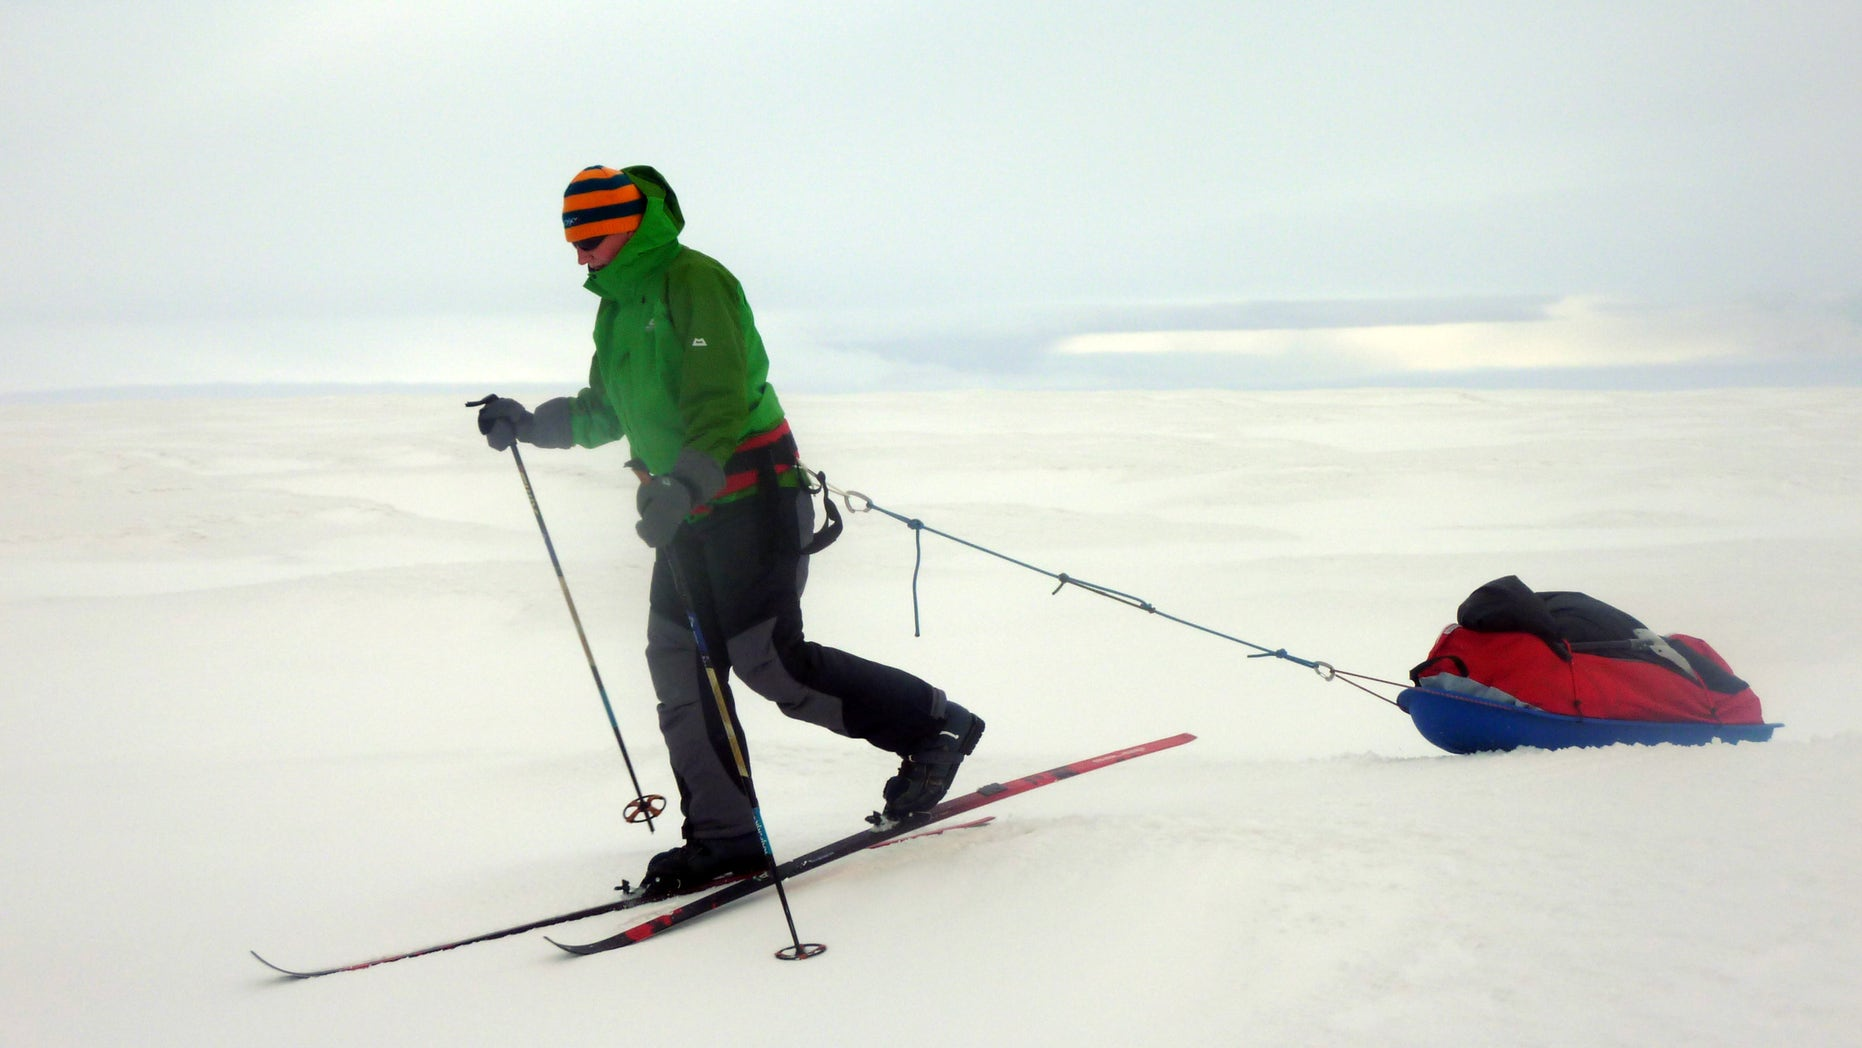 Sept. 24, 2010: British adventurer Felicity Aston skis across Iceland during a pre-expedition training trip. Aston plans to ski by herself across the Antarctica, all the way to the other side of the frozen continent.